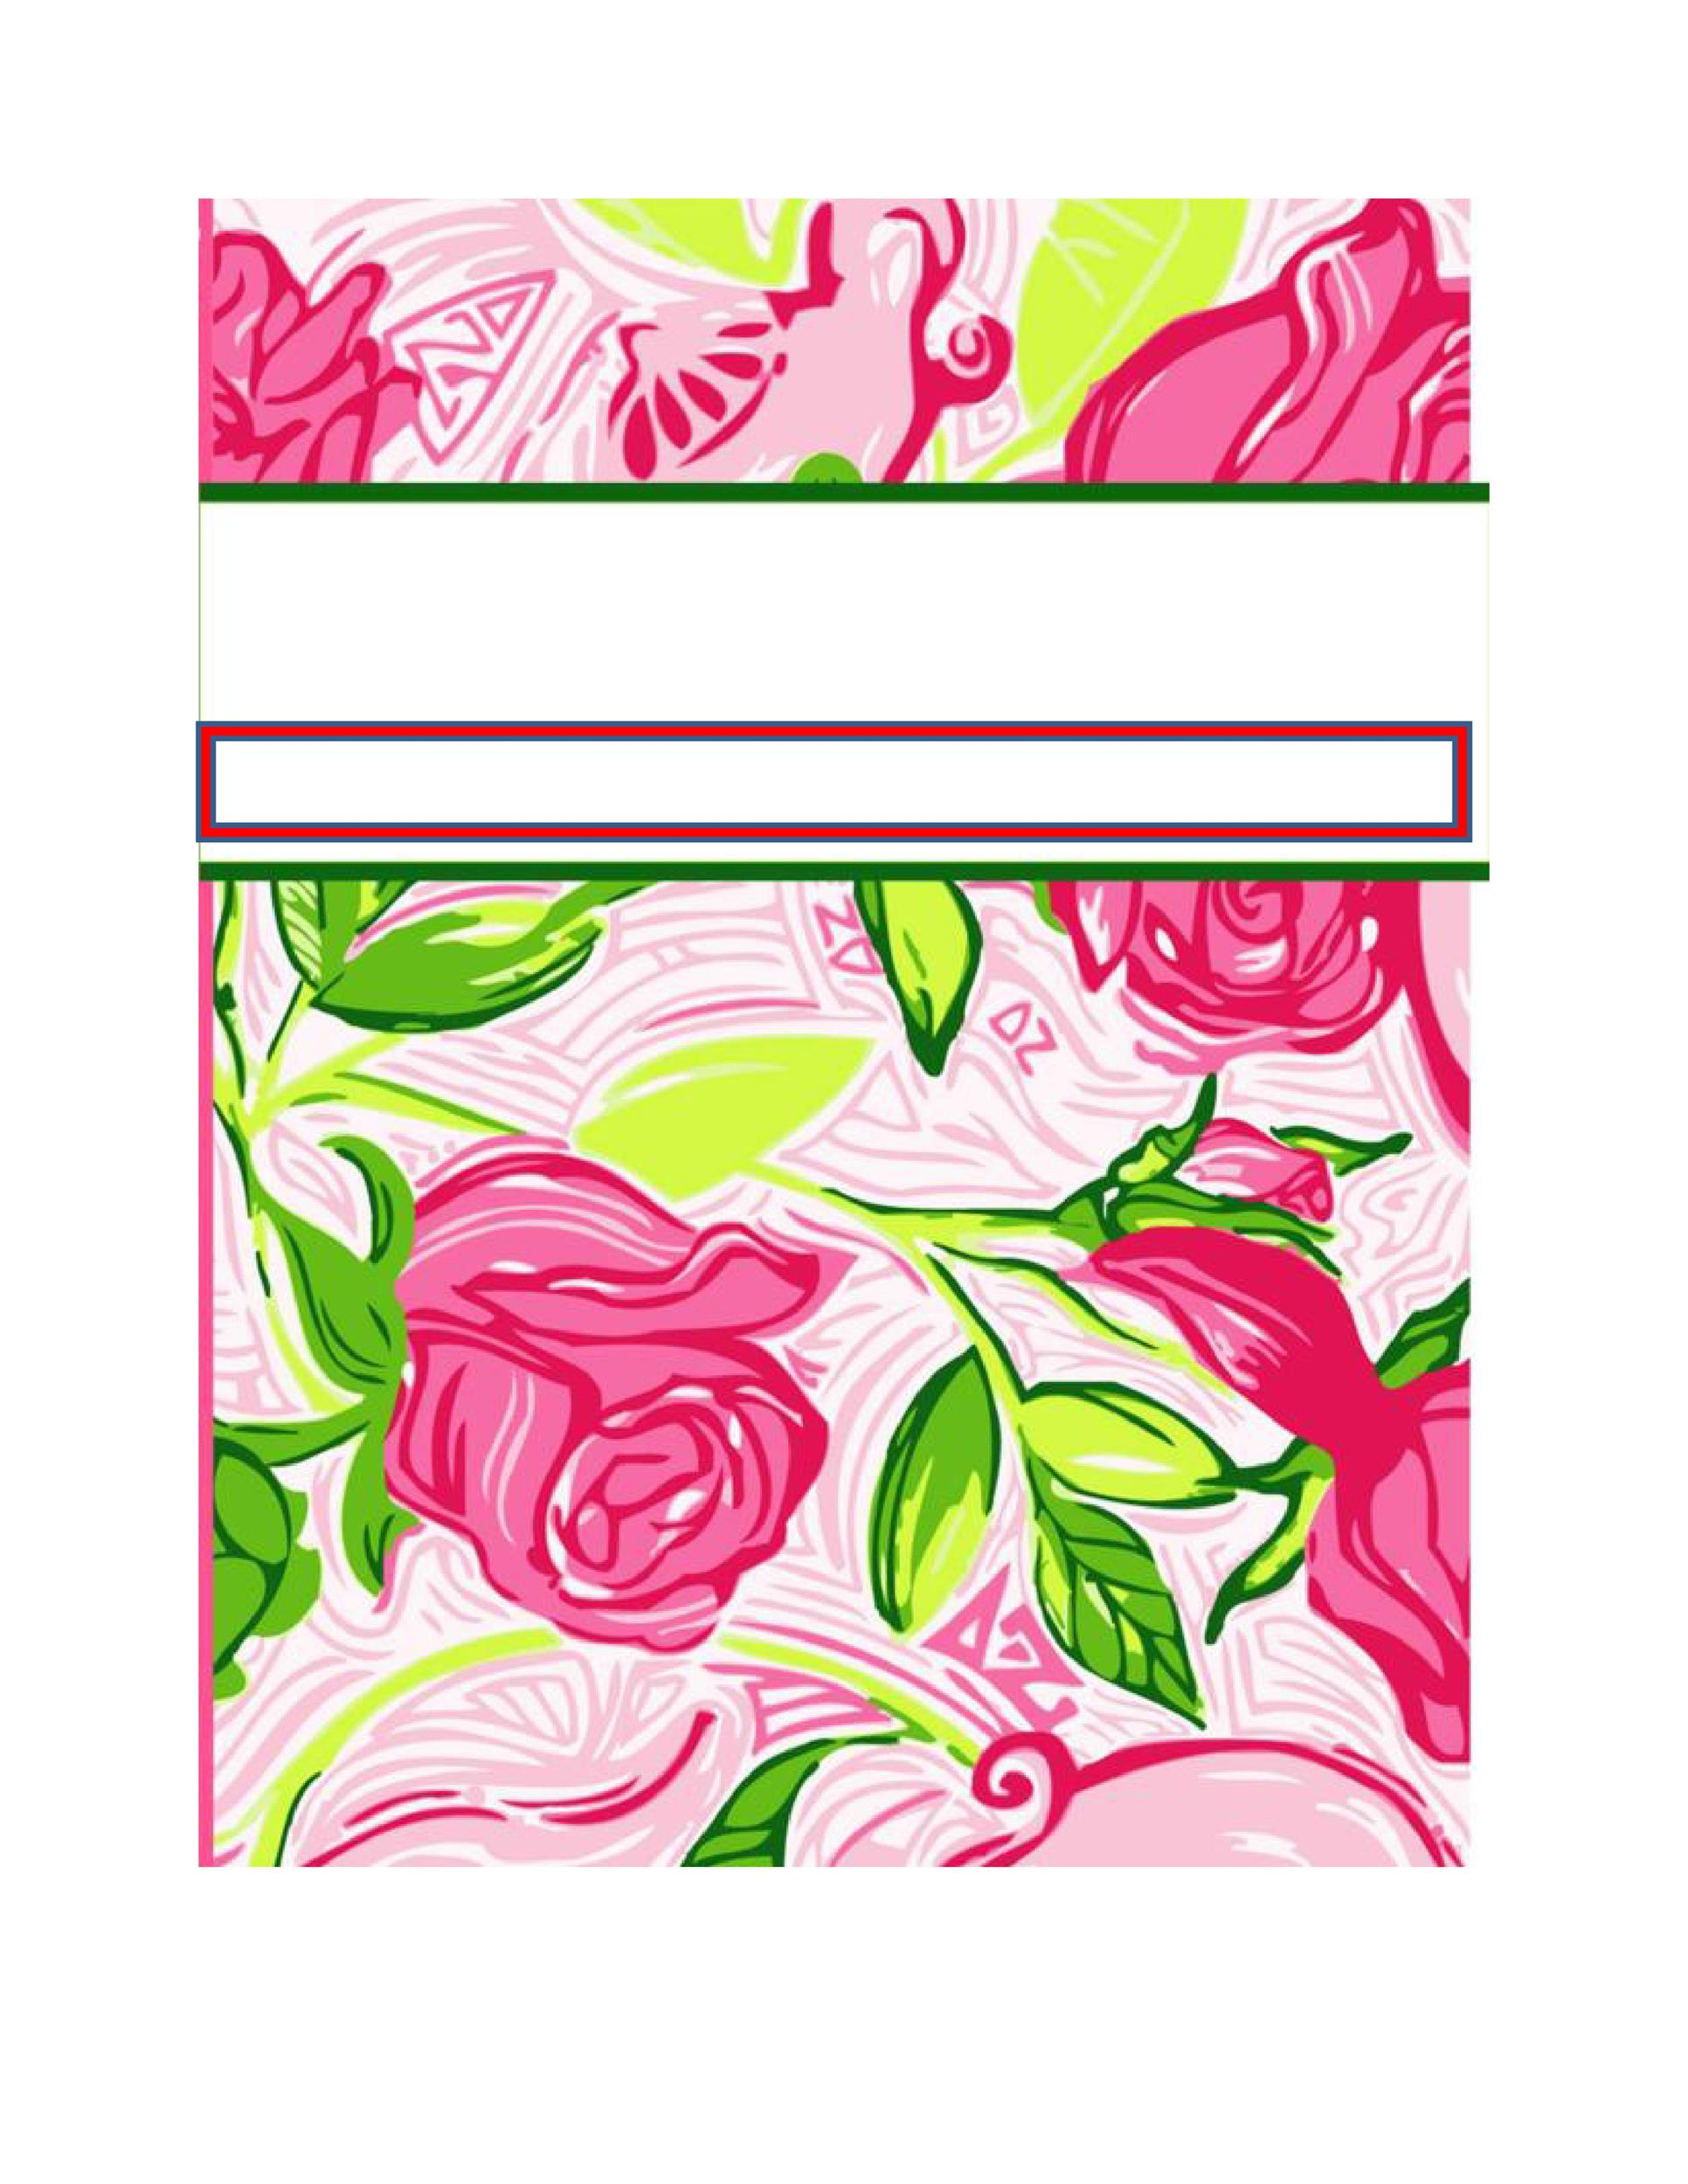 Free binder cover templates | customize online & print at home | free!